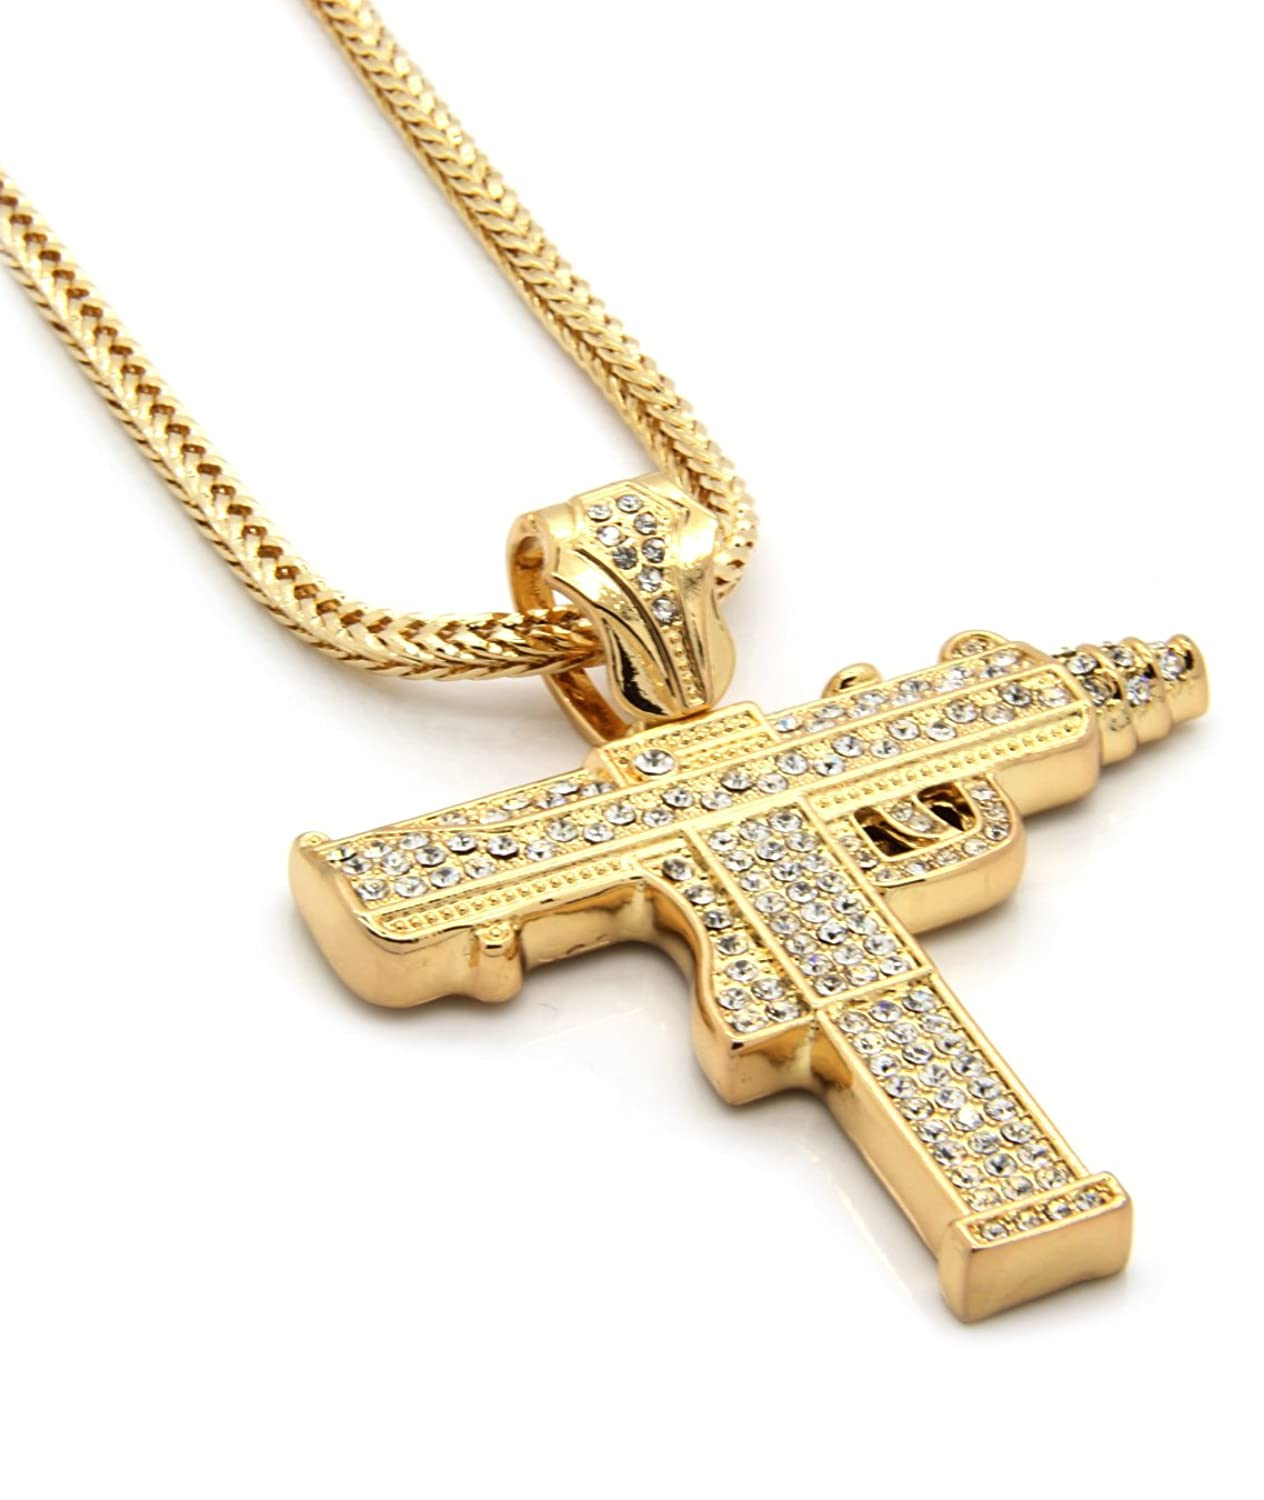 jewellery gold free plated men with clasping necklace s amazon uk hands chain dp real prayer halukakah pendant co rope